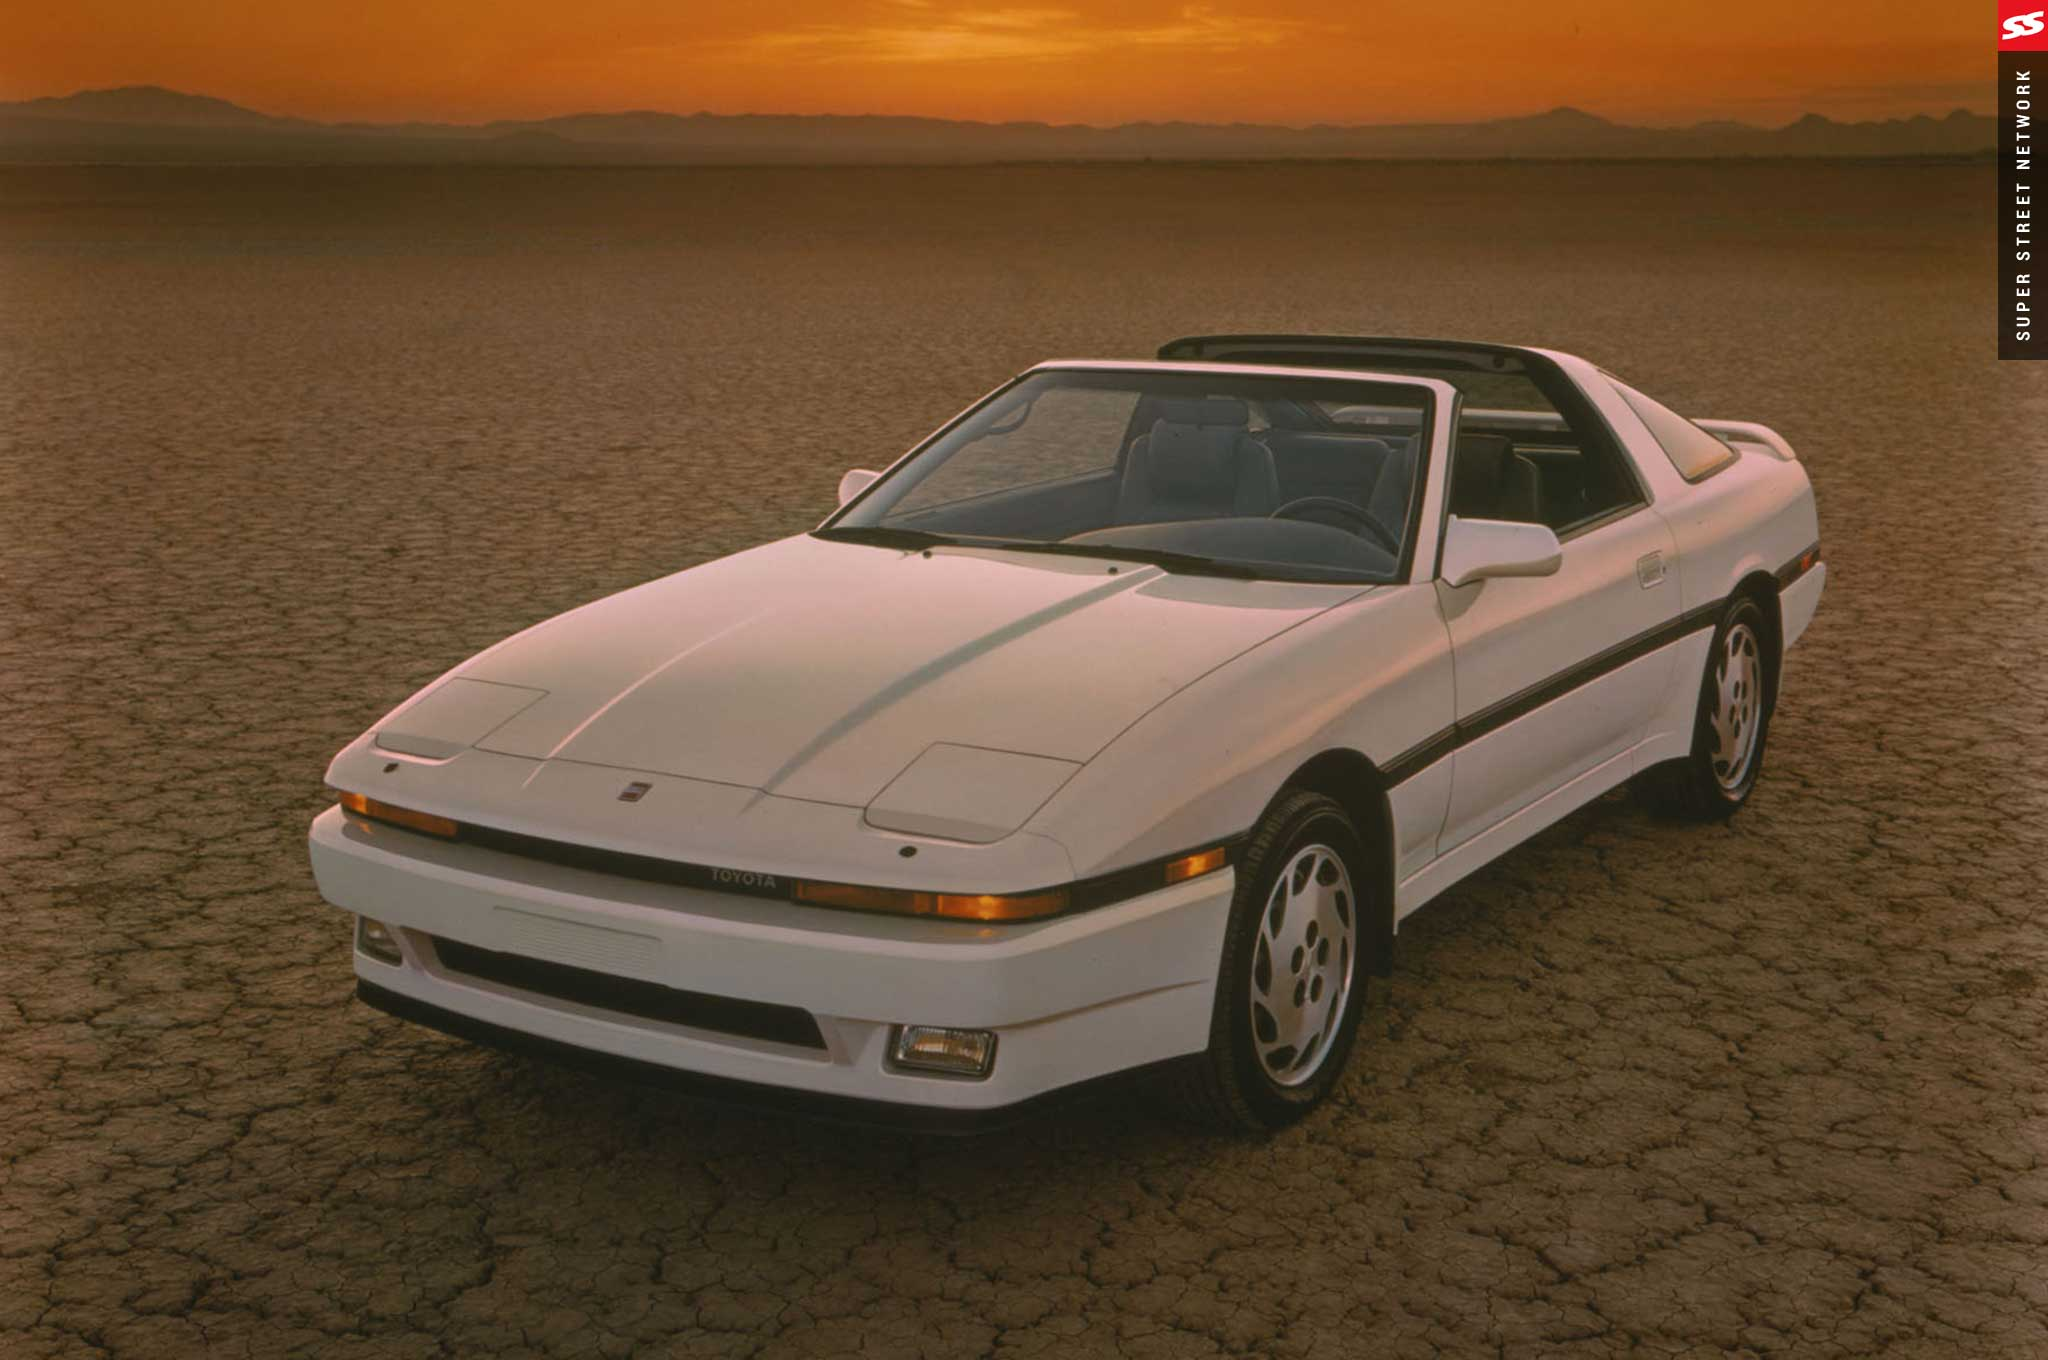 Third-gen Supra with a targa top—not that super but still a cool if you ask us!